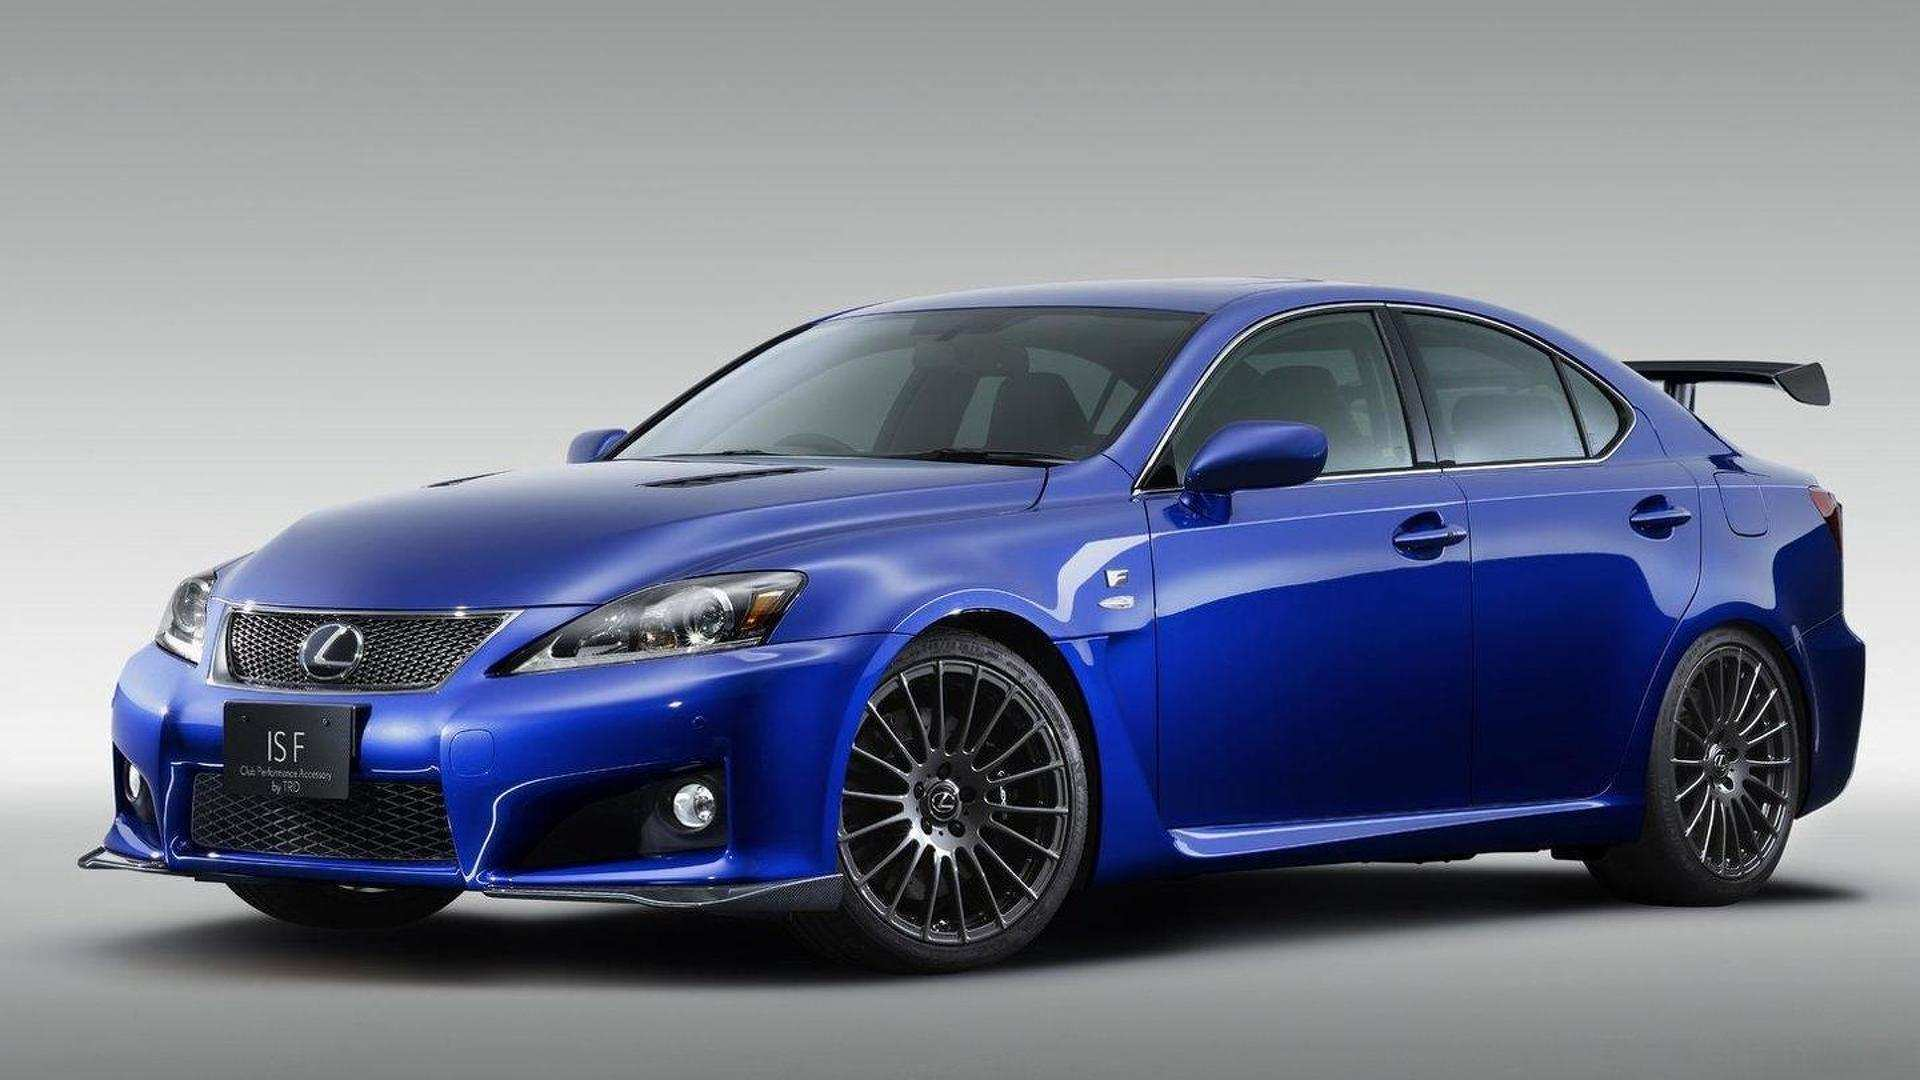 48 Concept of Lexus Isf 2020 Price and Review with Lexus Isf 2020